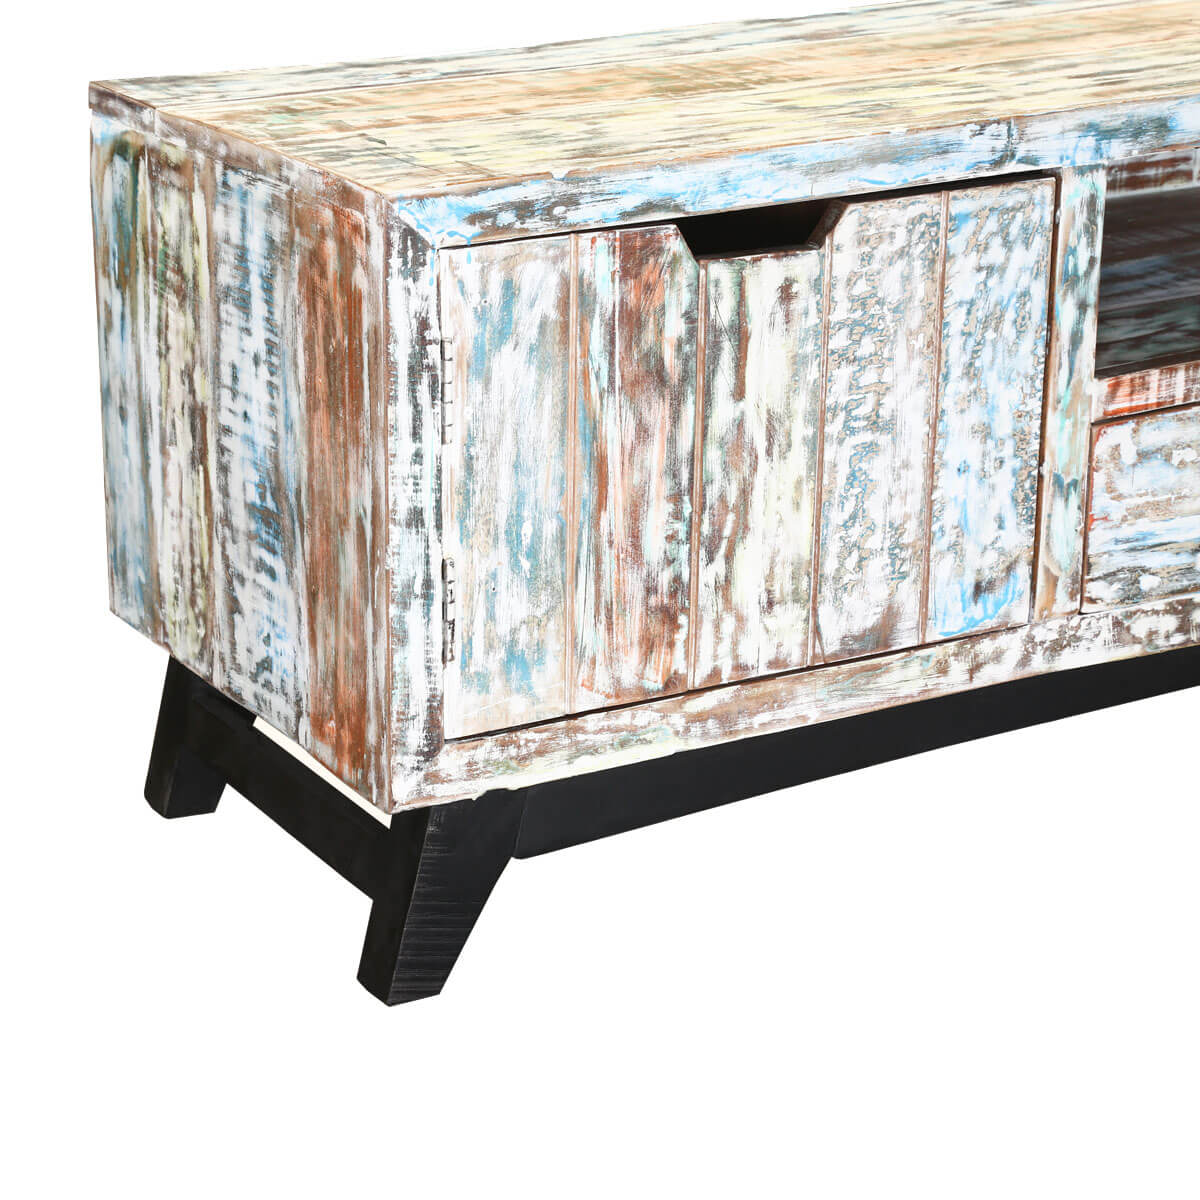 Tucson Handcrafted Two Drawer Reclaimed Wood Rustic TV Stand - Handcrafted Two Drawer Reclaimed Wood Rustic TV Stand